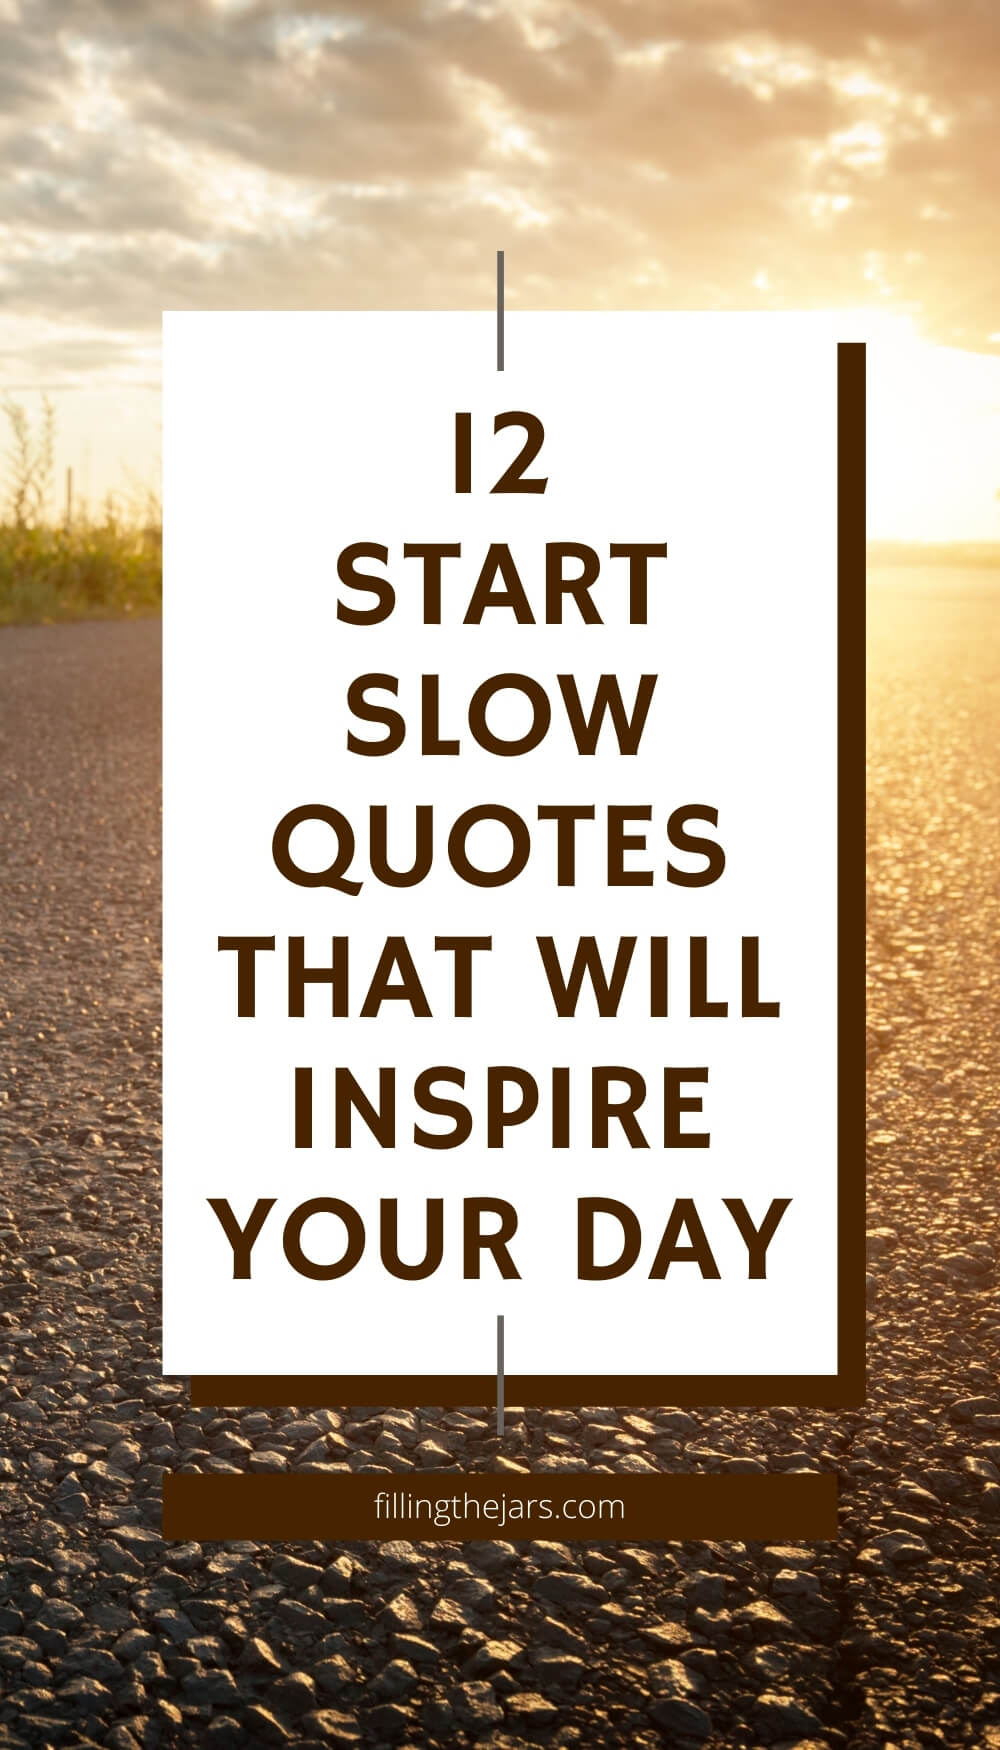 Text start slow quotes that will inspire your day on white background over image of blacktop road at sunrise.